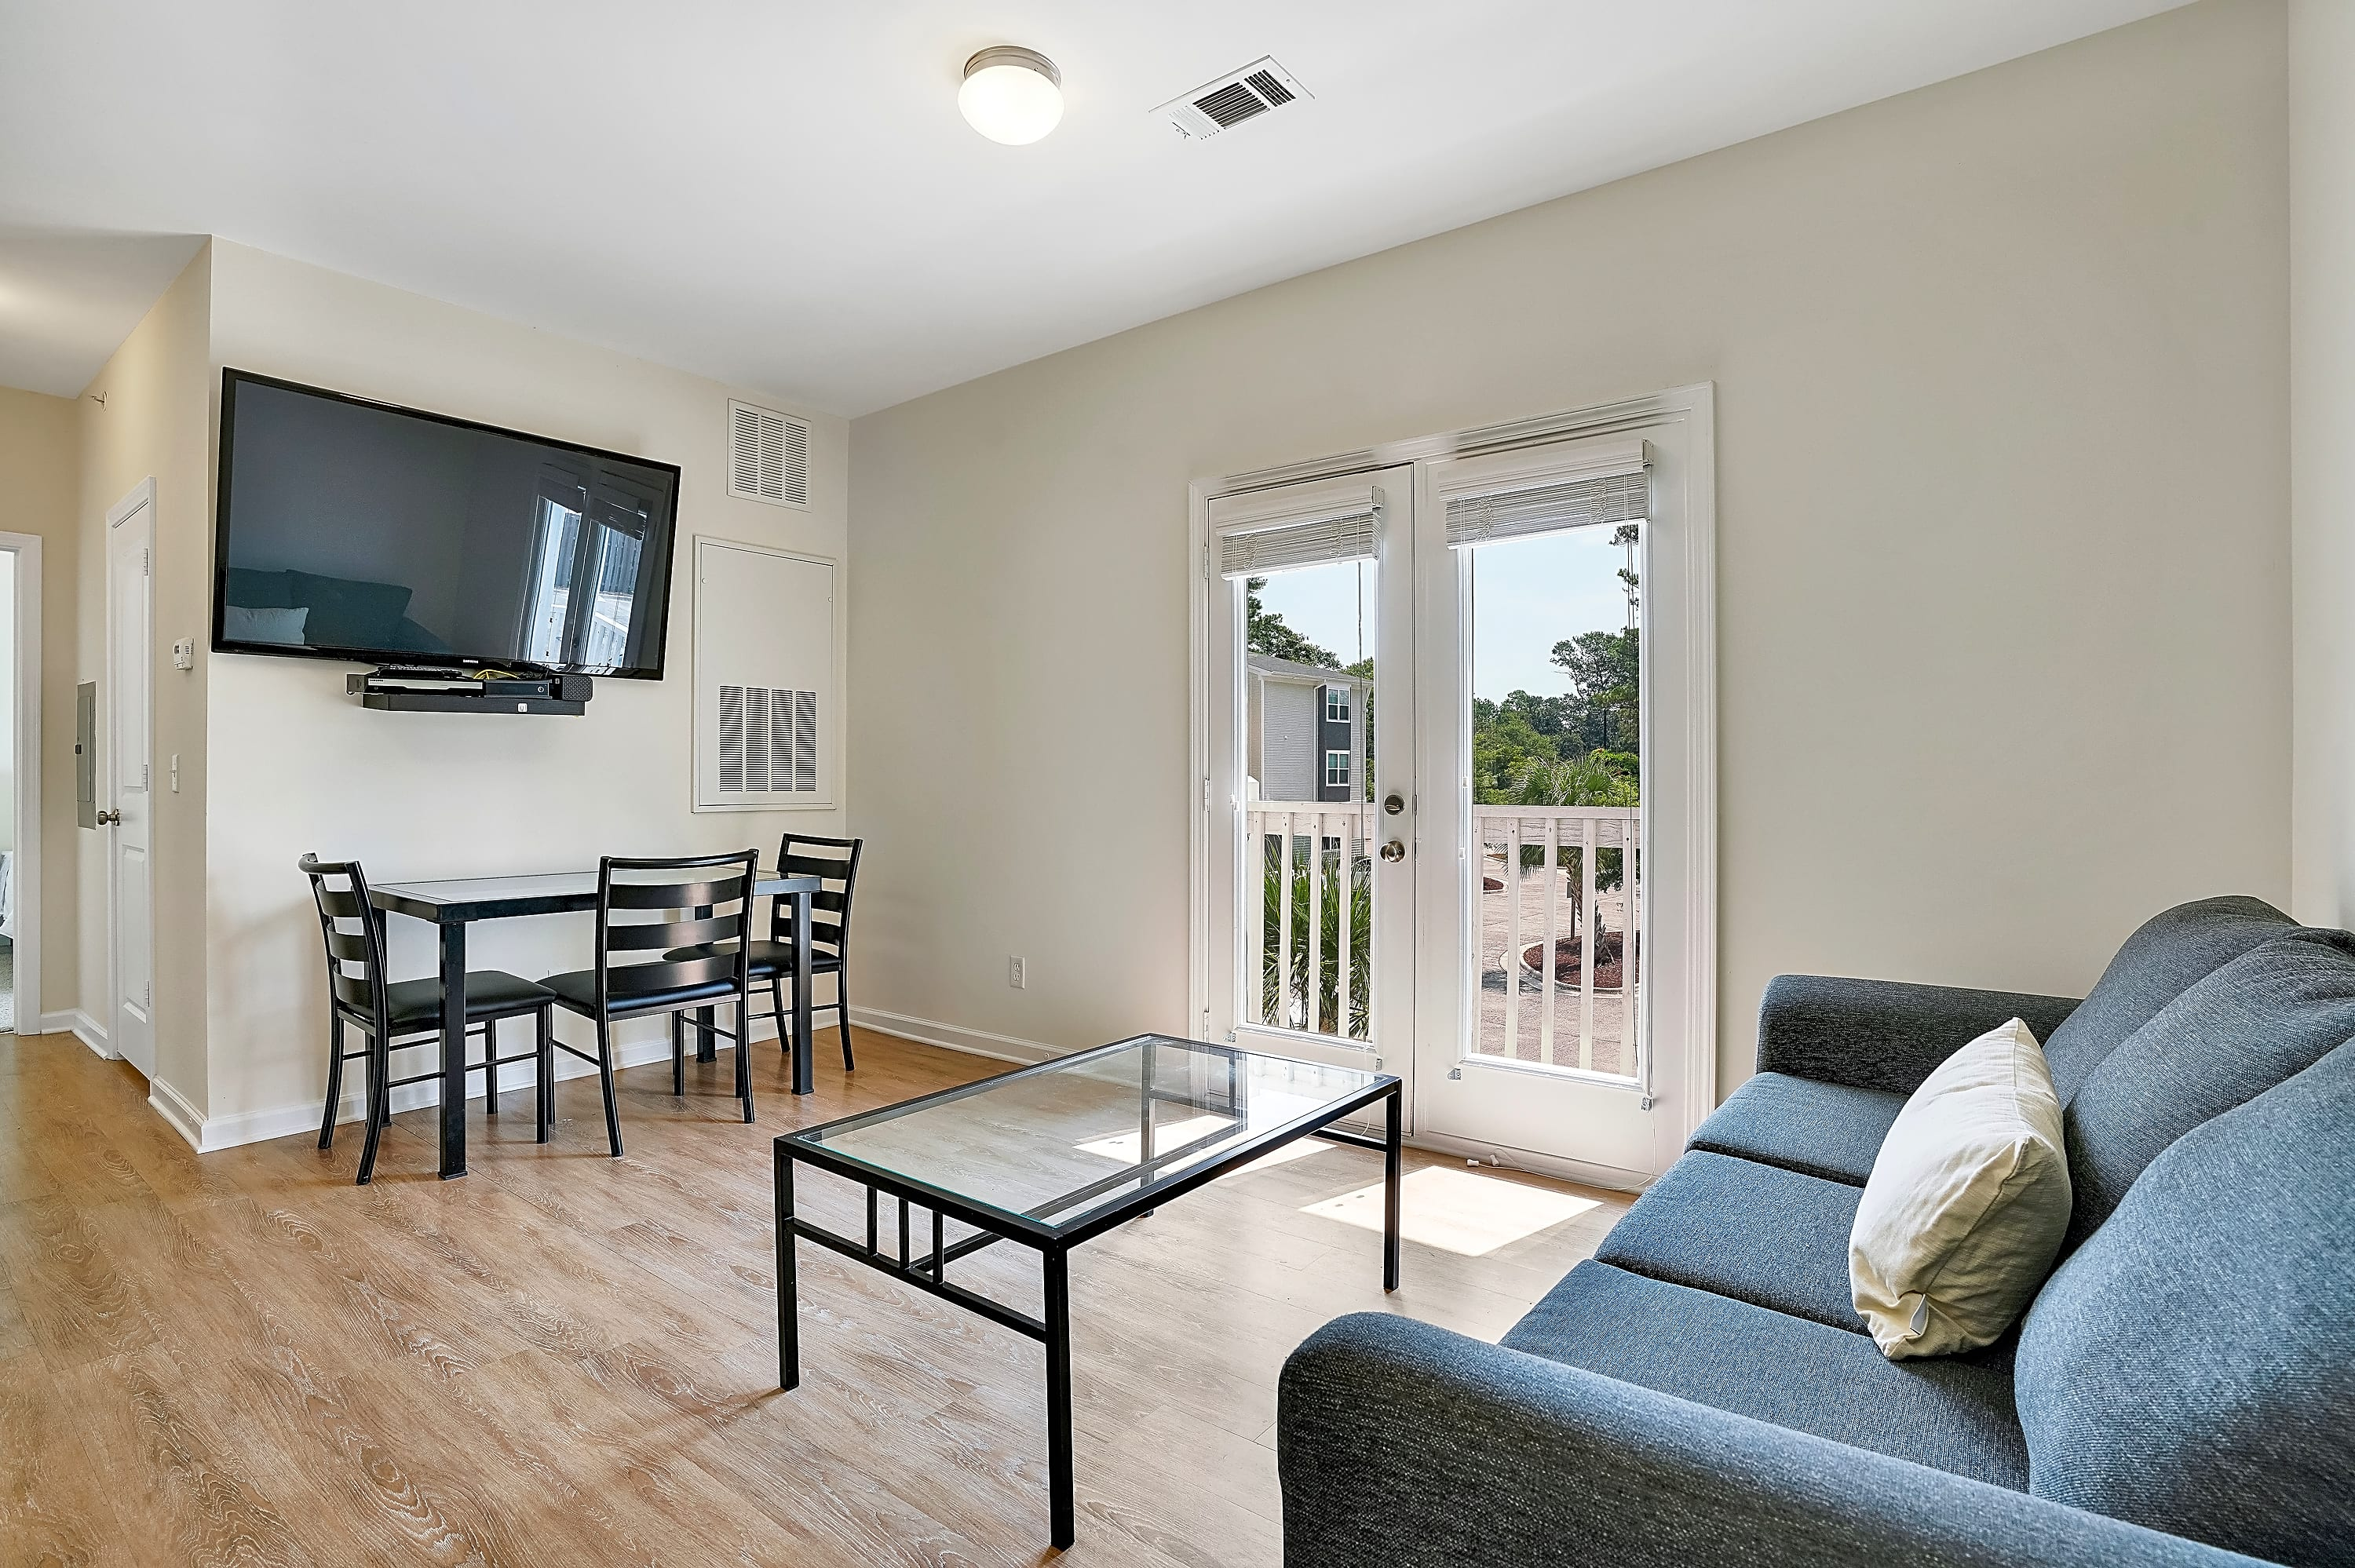 Apartments Near UNCW Elevation Student Living for University of North Carolina-Wilmington Students in Wilmington, NC